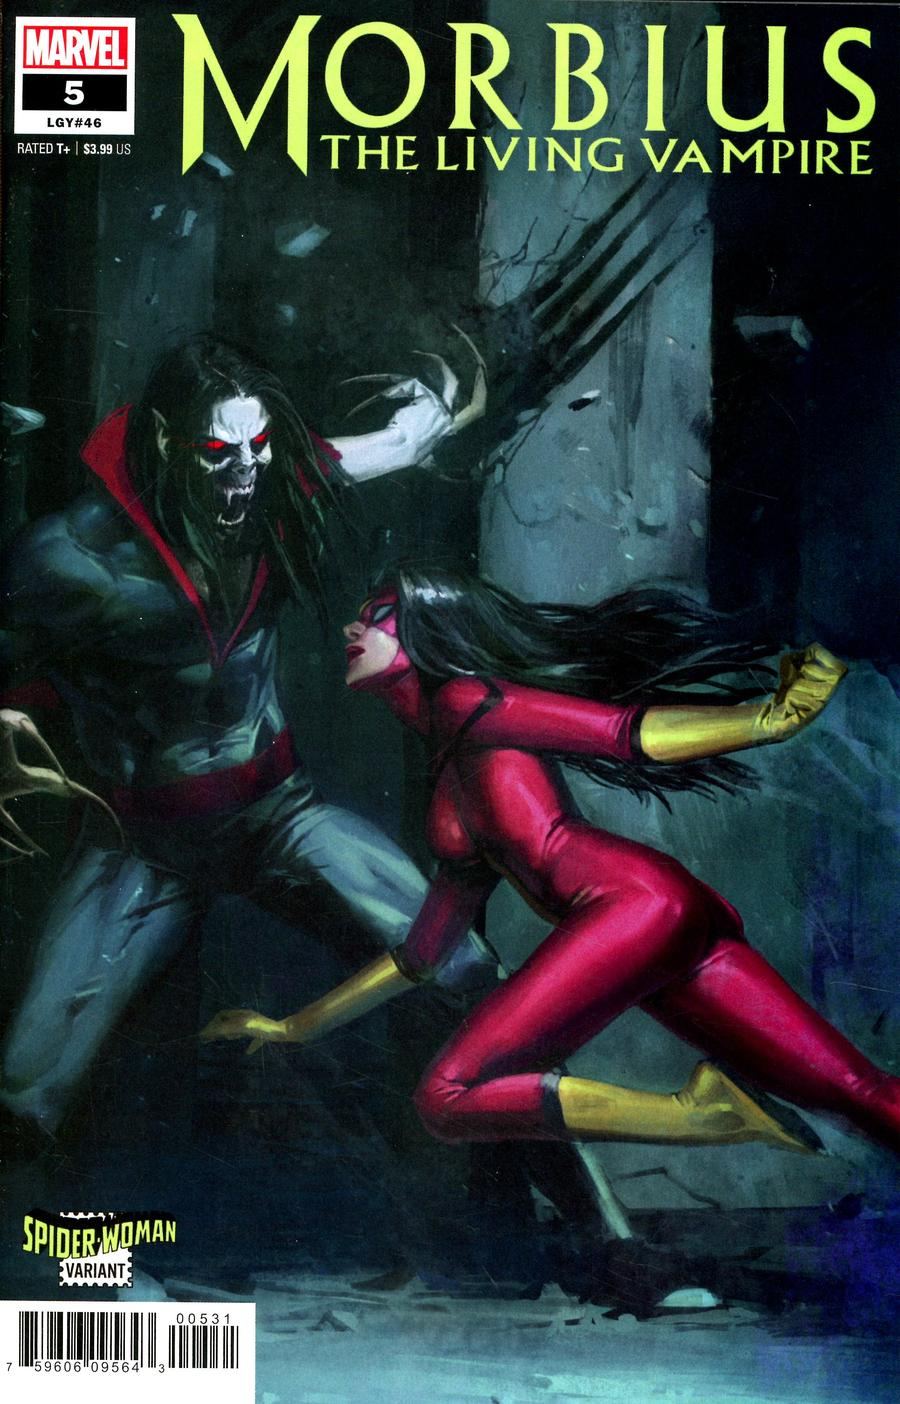 Morbius #5 Cover B Variant Pyeong Jun Park Spider-Woman Cover